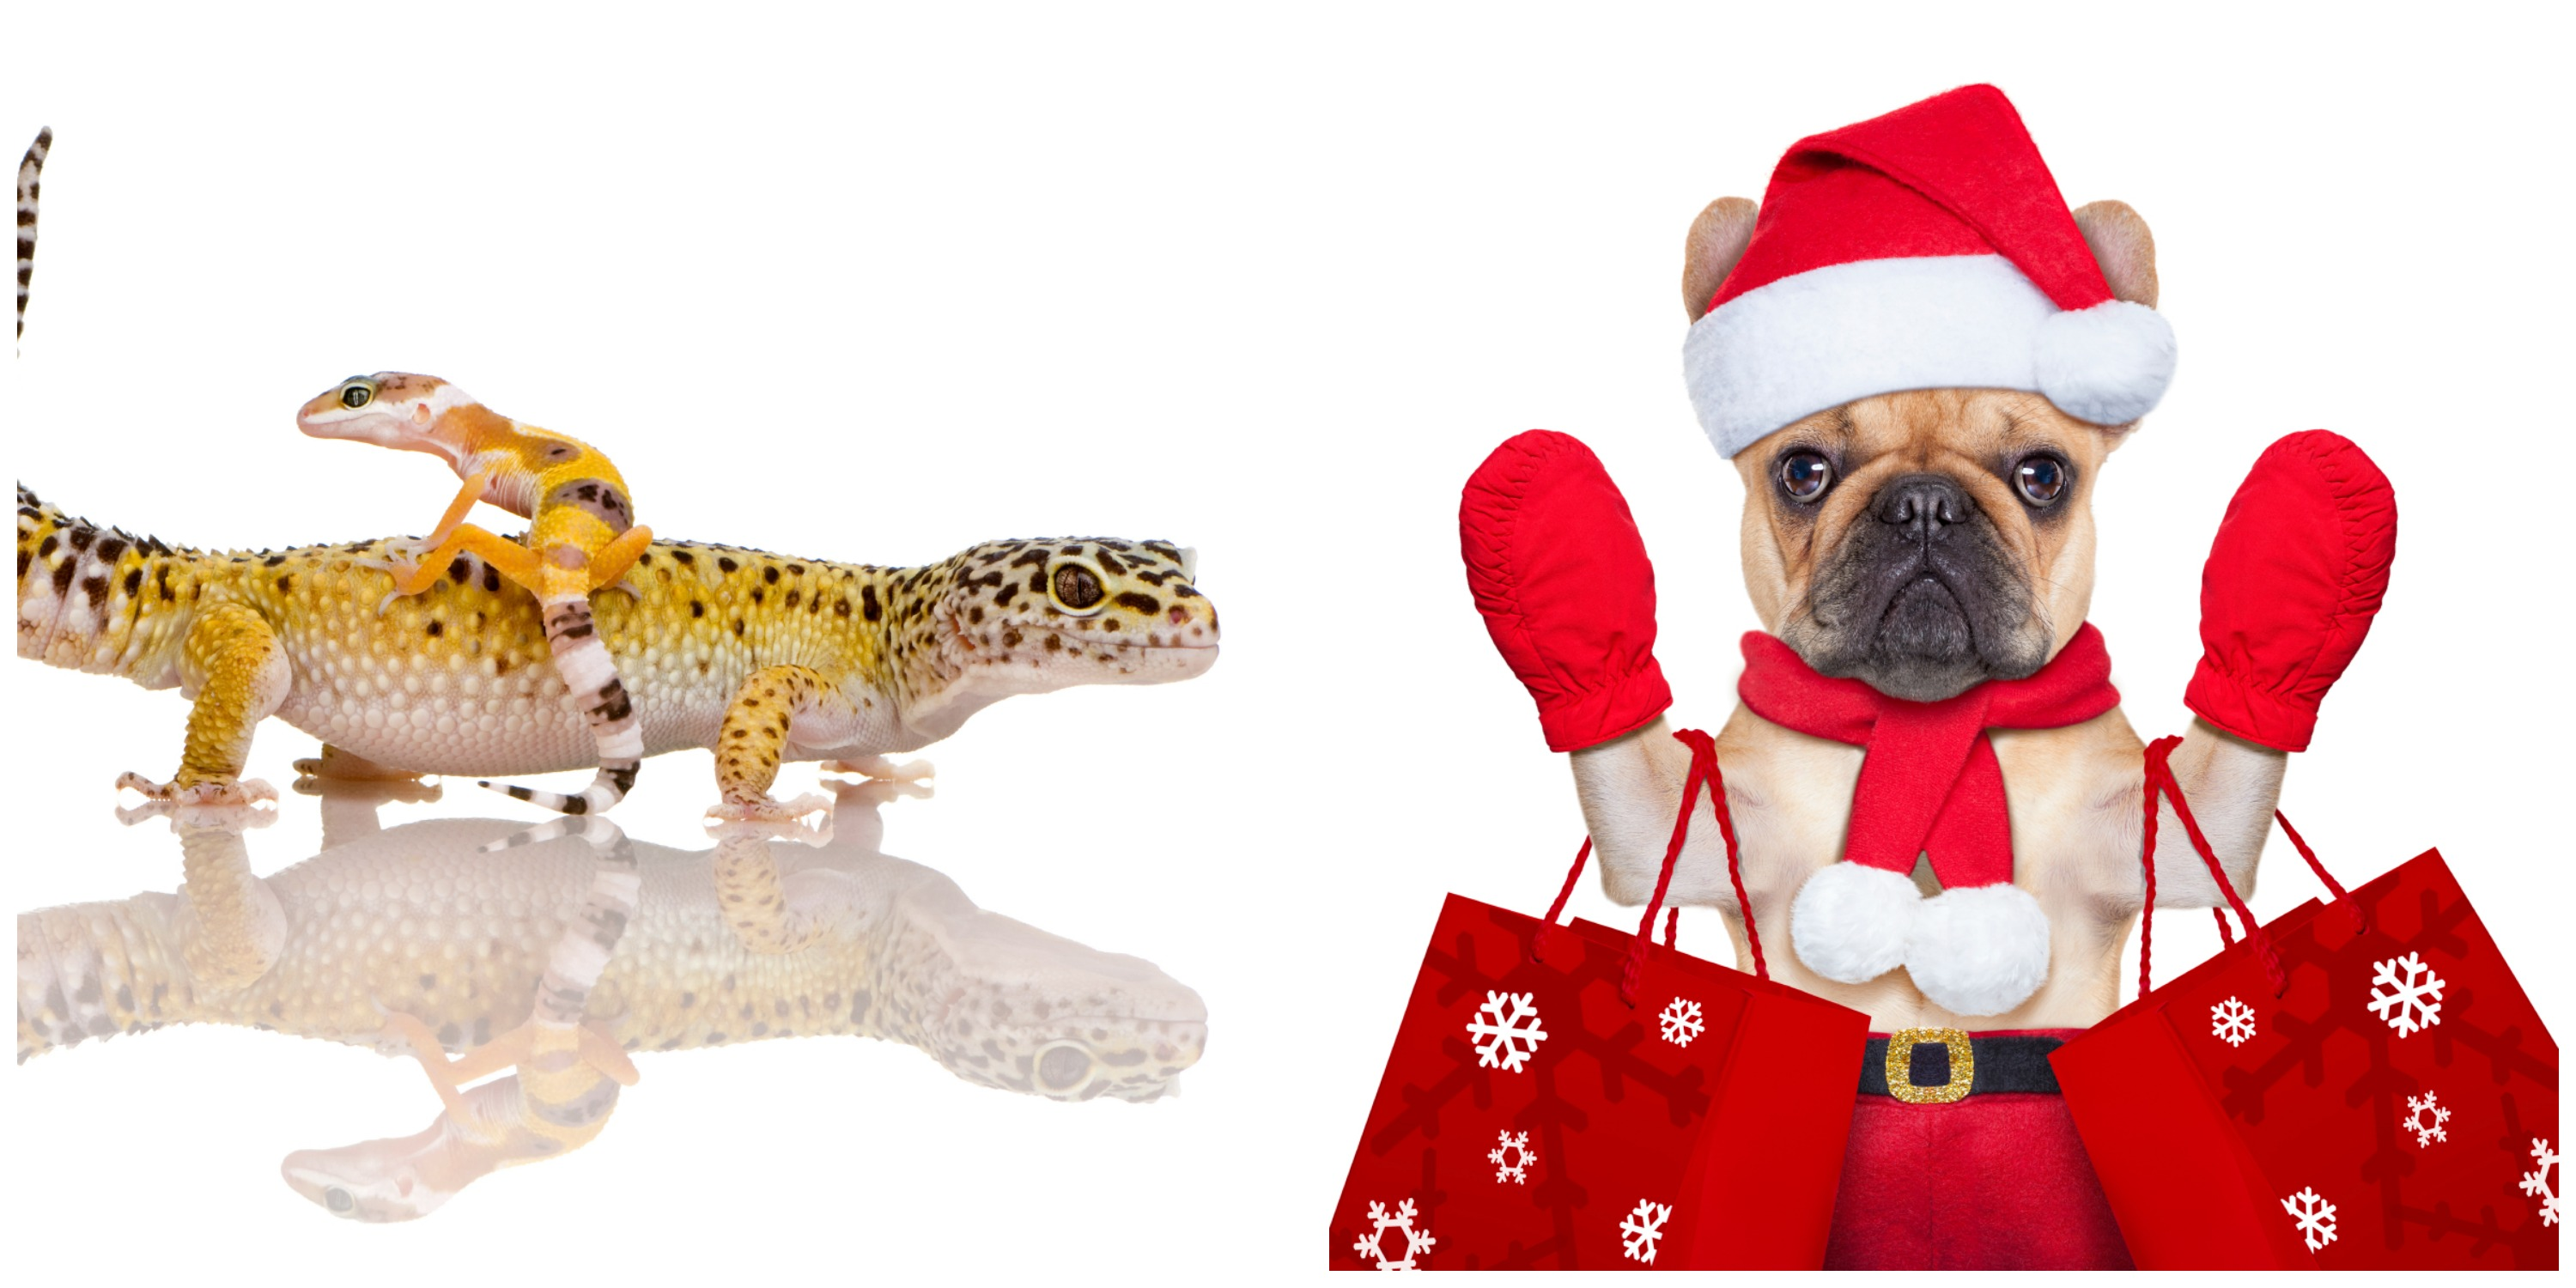 Reptile or Paw?…  Canadian Pet Expo, Woofstock held on same weekend  –  November 20 & 21, 2015